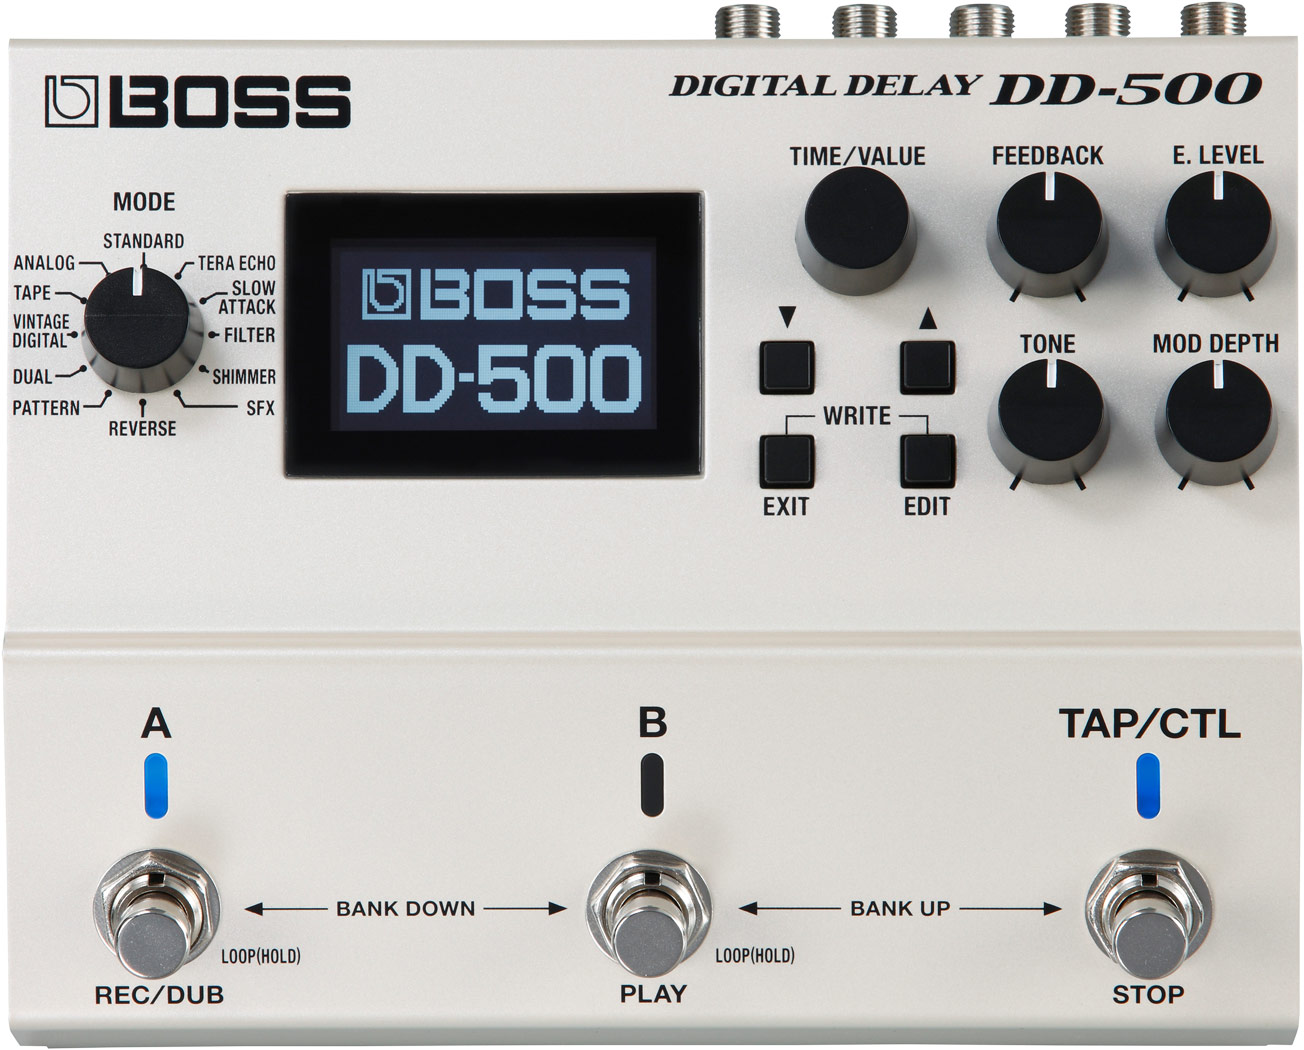 DD-500 | Digital Delay - BOSS